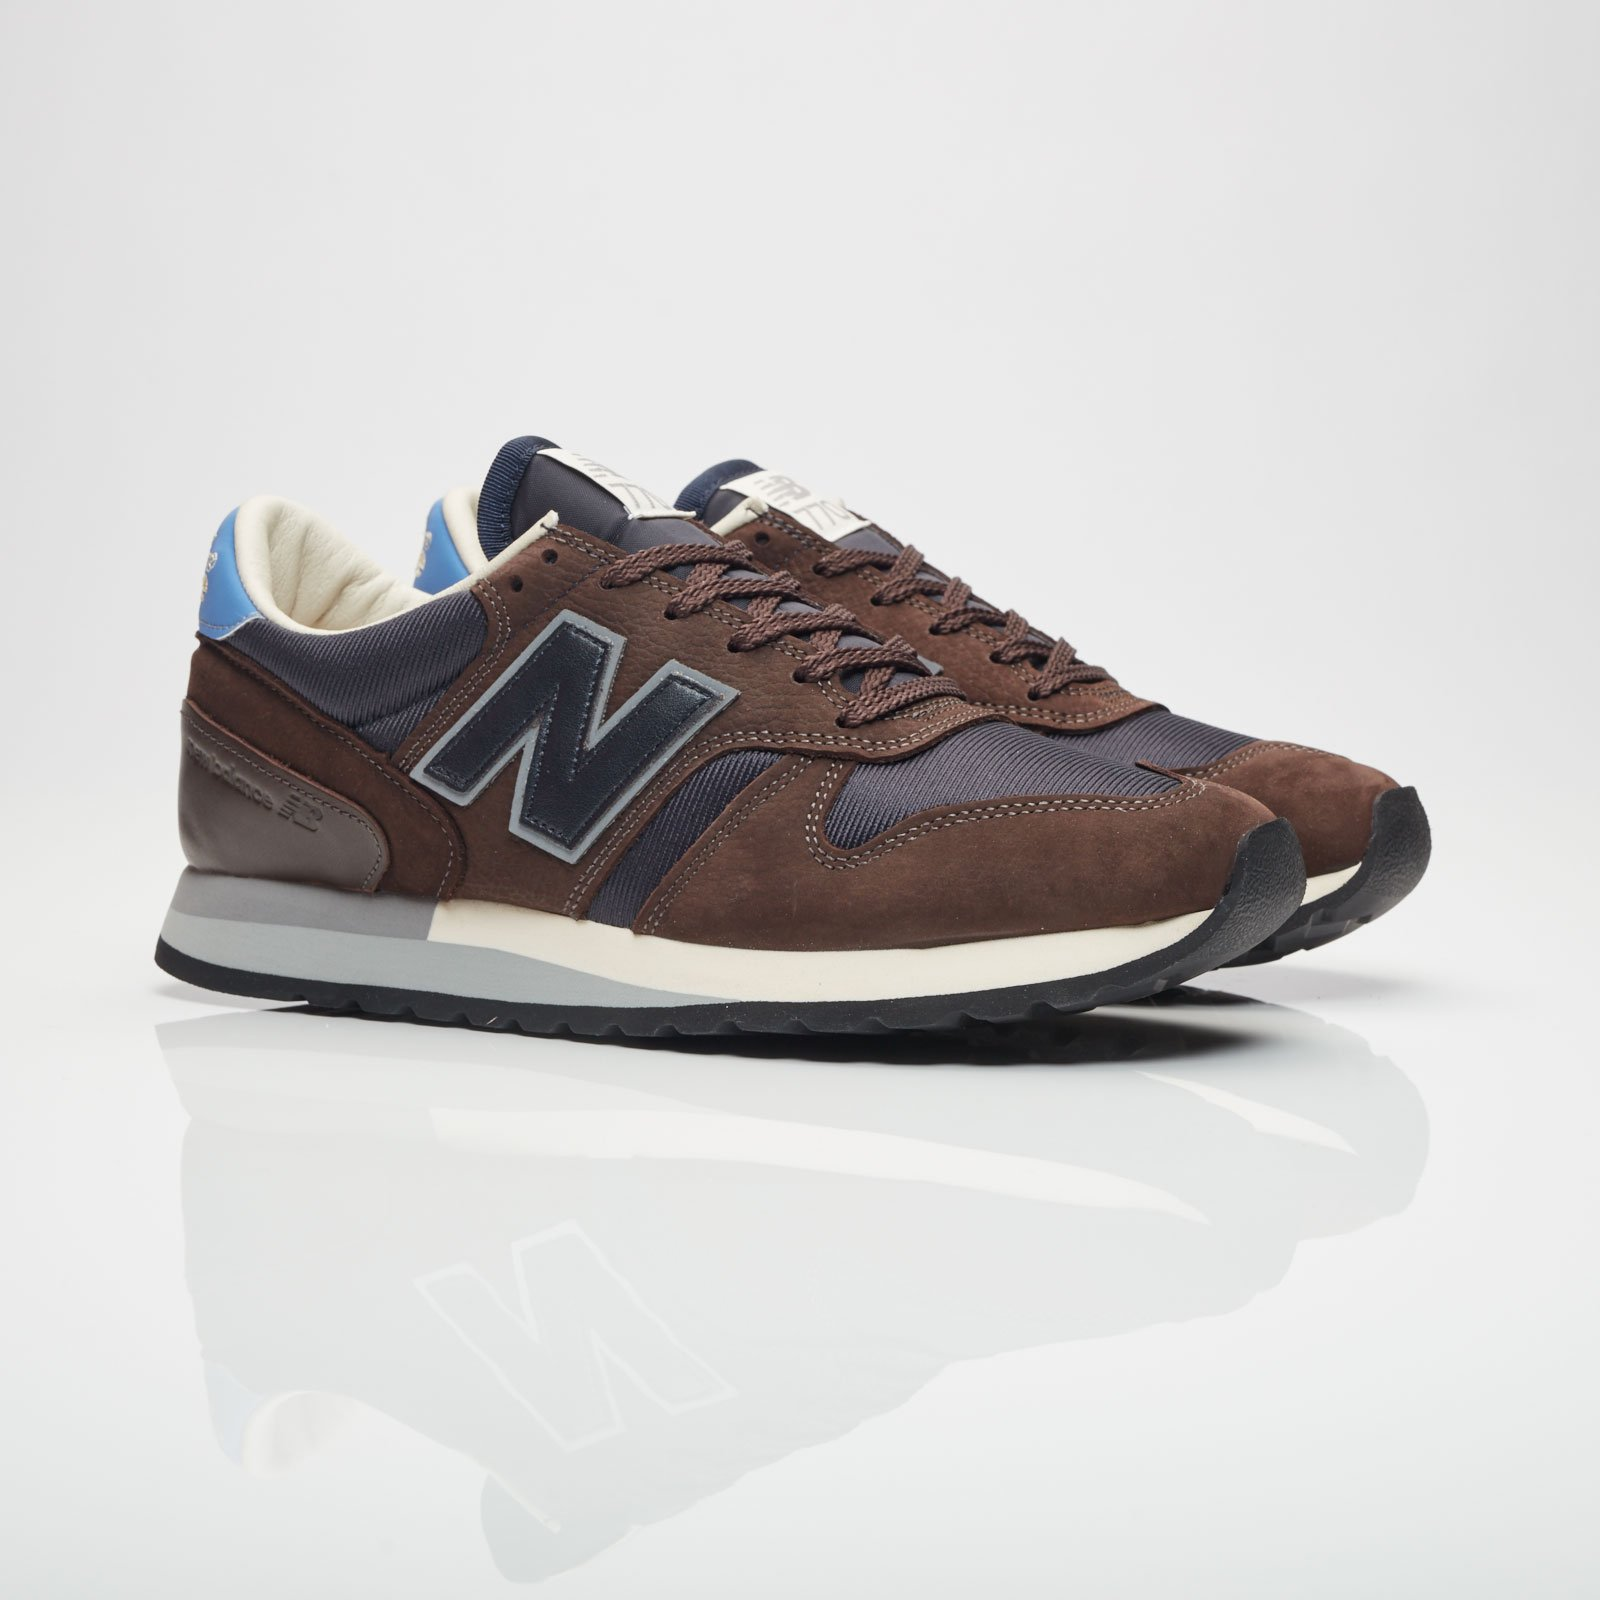 bf90f4376f3 New Balance M770 x Norse Projects - M770np - Sneakersnstuff ...